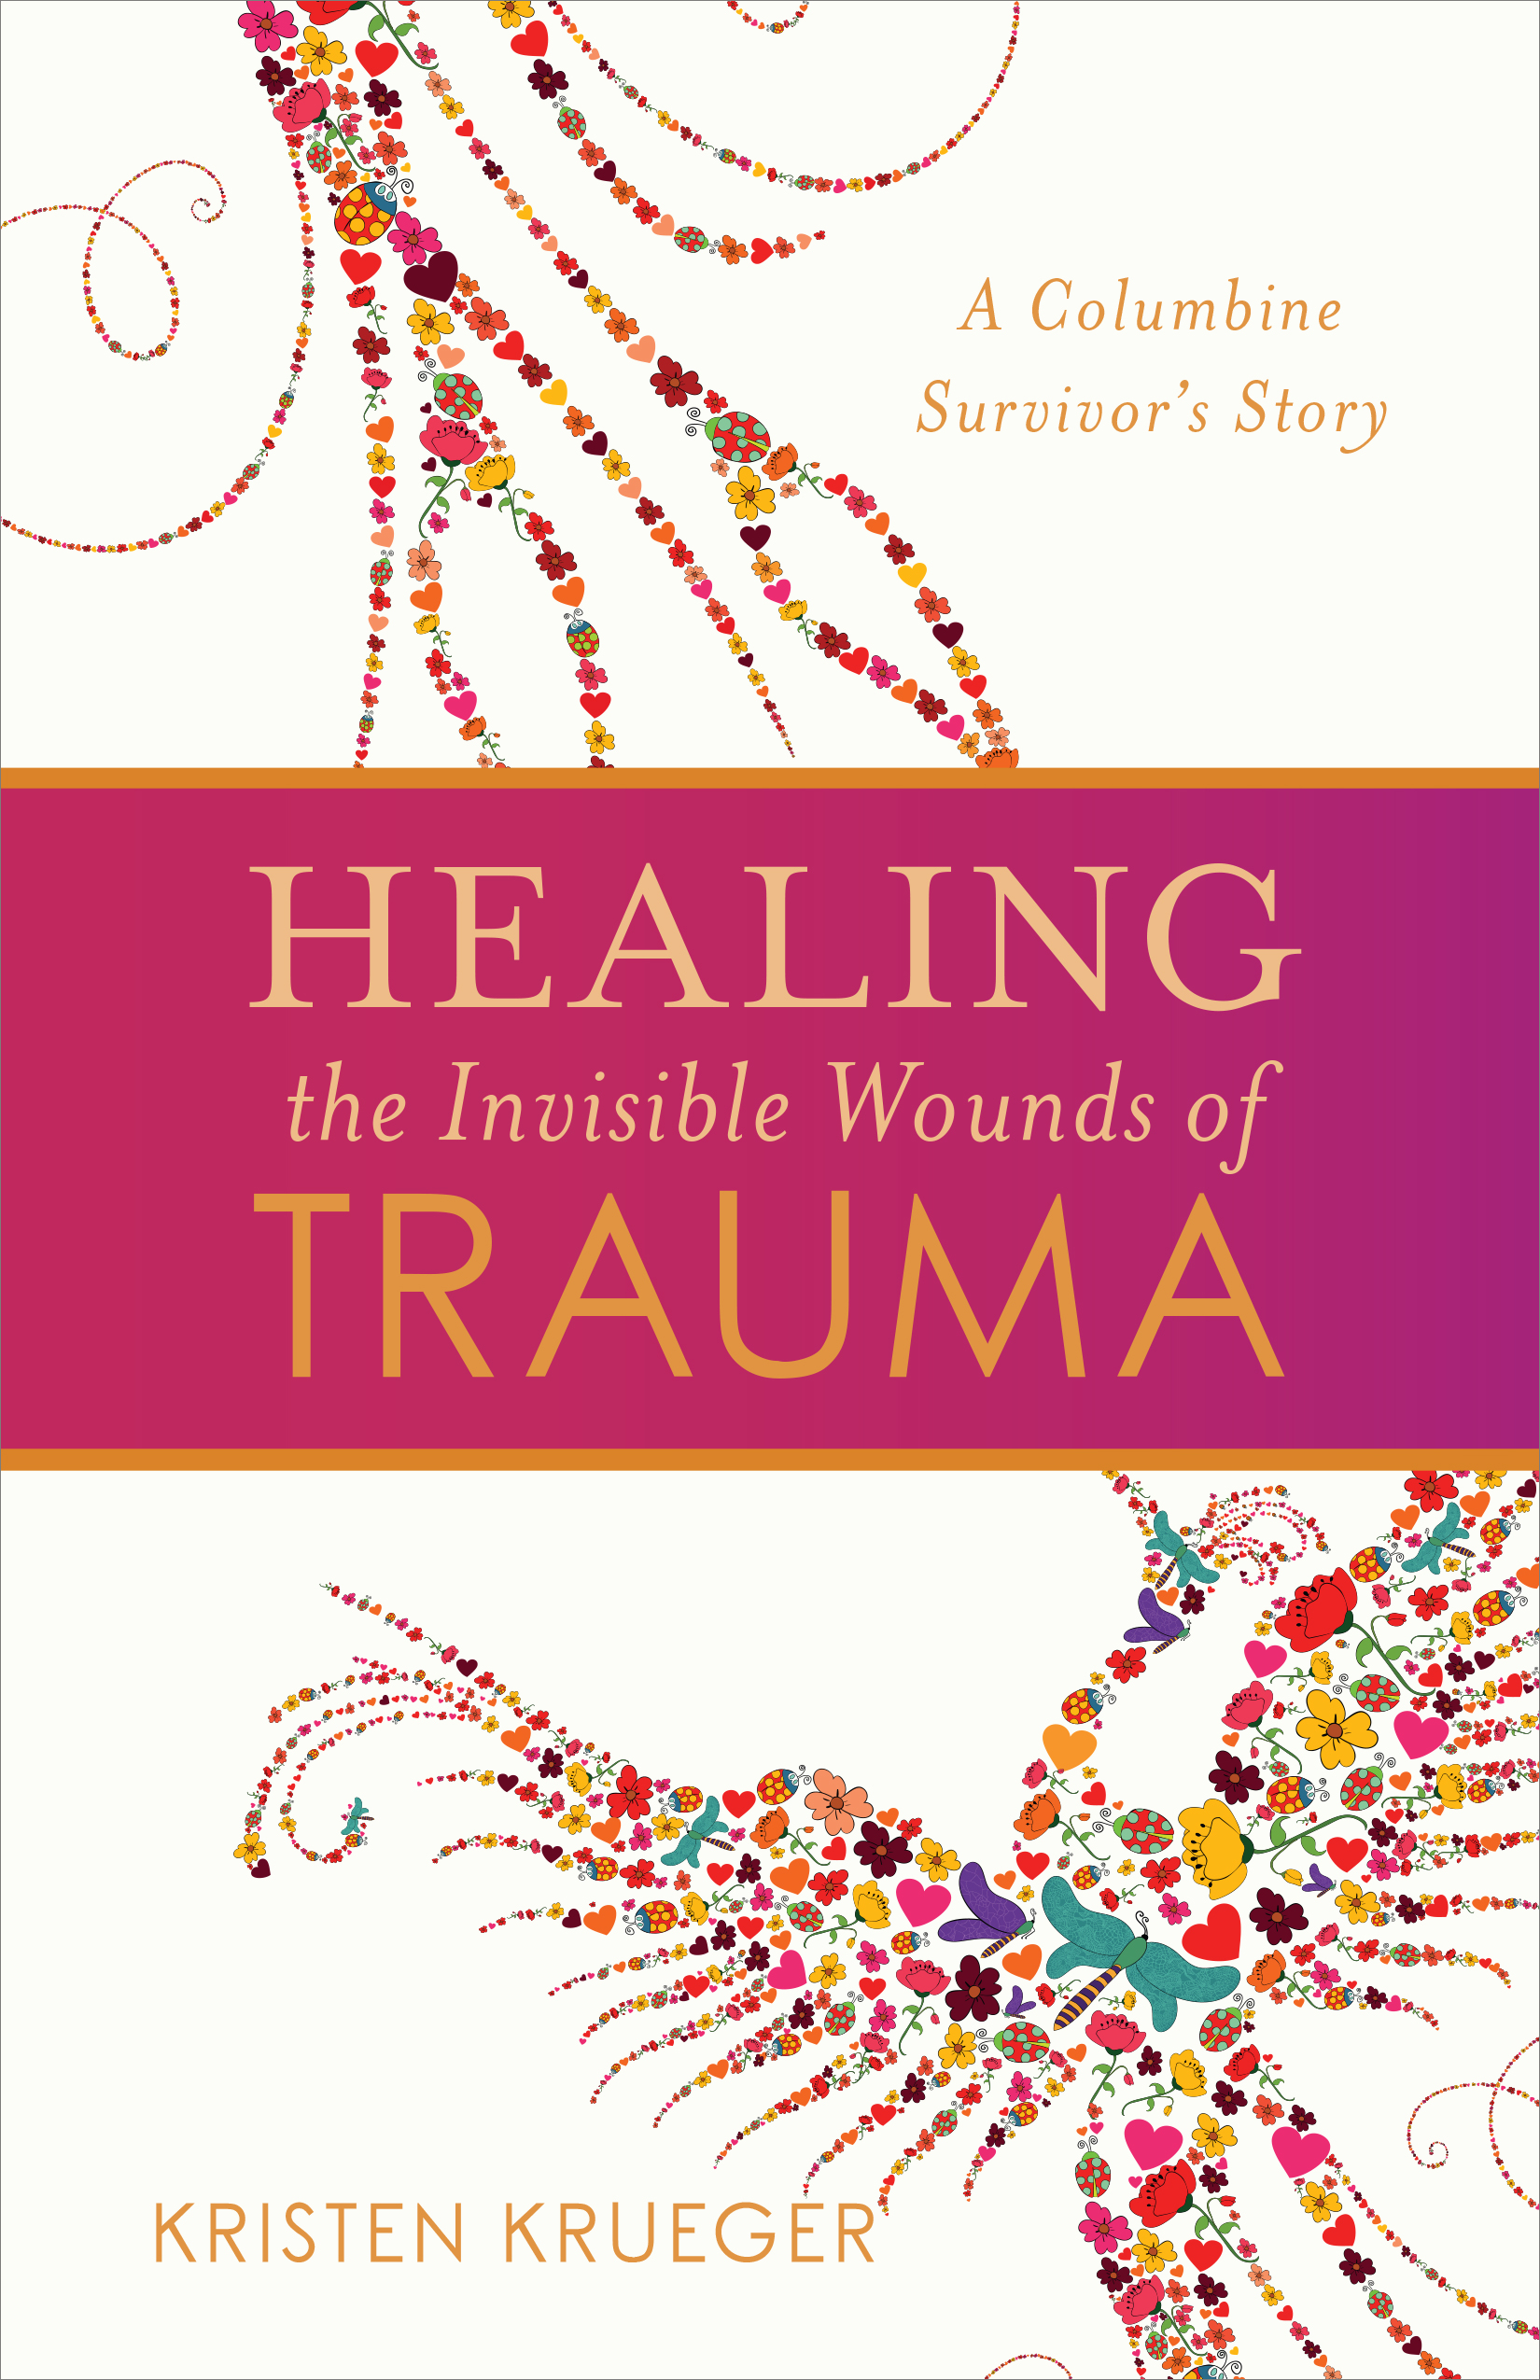 Healing the Invisible Wounds of Trauma